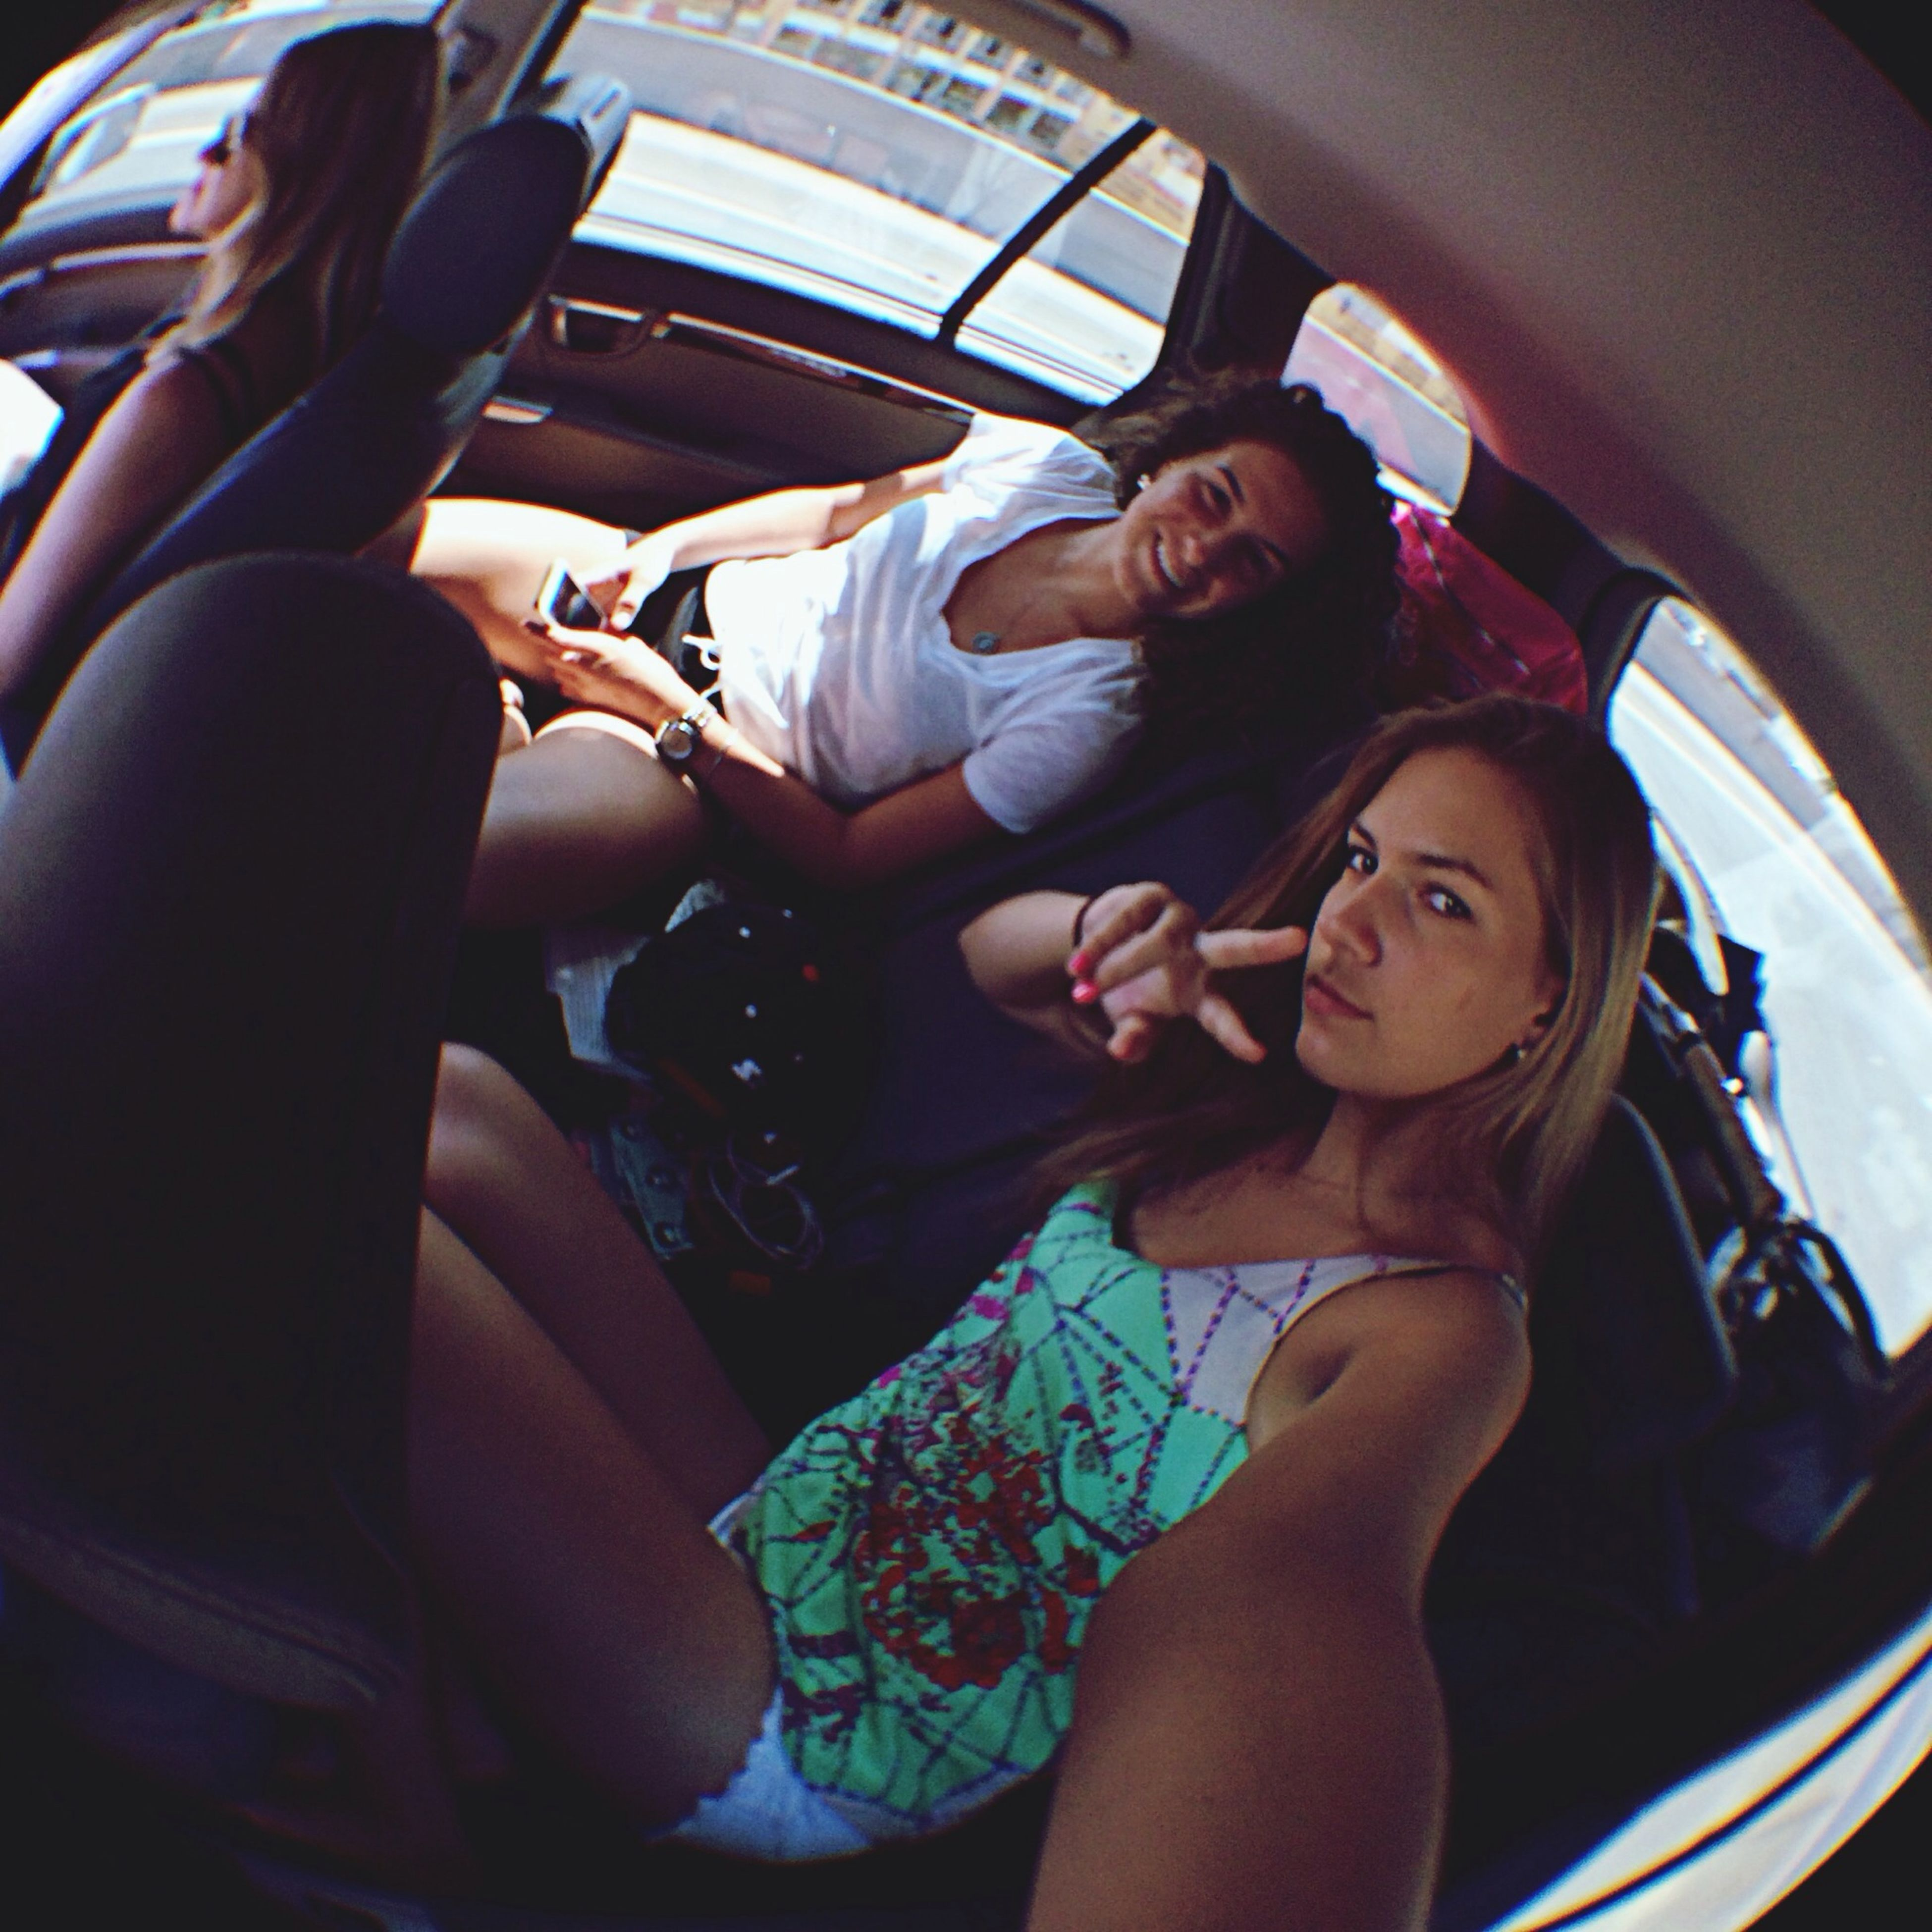 lifestyles, young adult, person, sitting, leisure activity, young women, indoors, casual clothing, togetherness, vehicle interior, transportation, relaxation, front view, holding, smiling, bonding